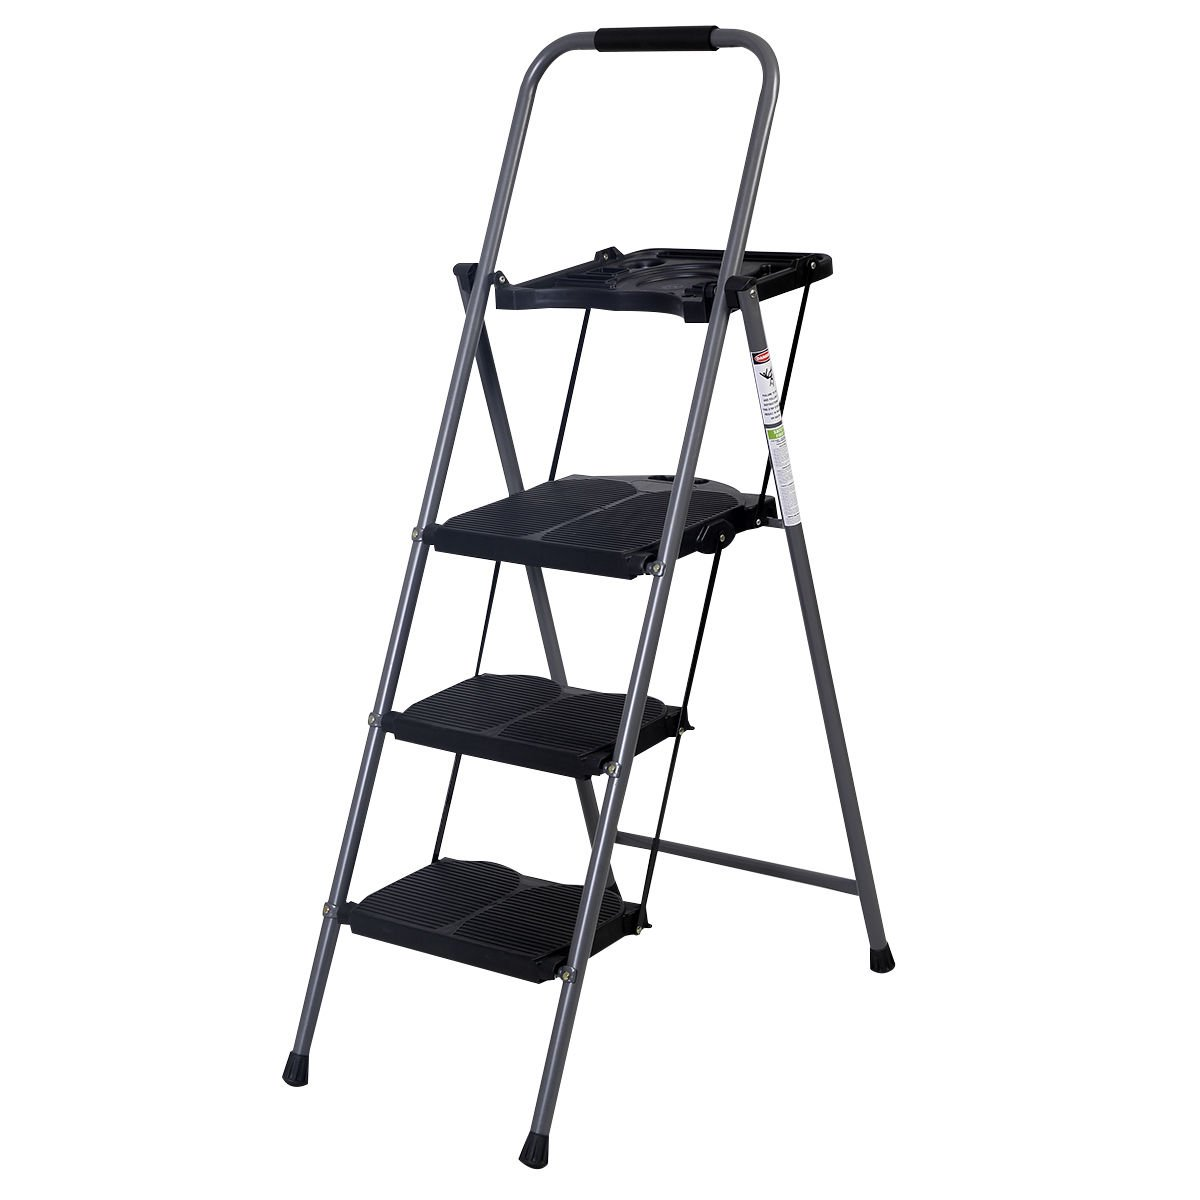 Giantex Hd 3 Step Ladder Platform Folding Stool Lightweight 330 LBS Capacity Space Saving w/Tray by Giantex